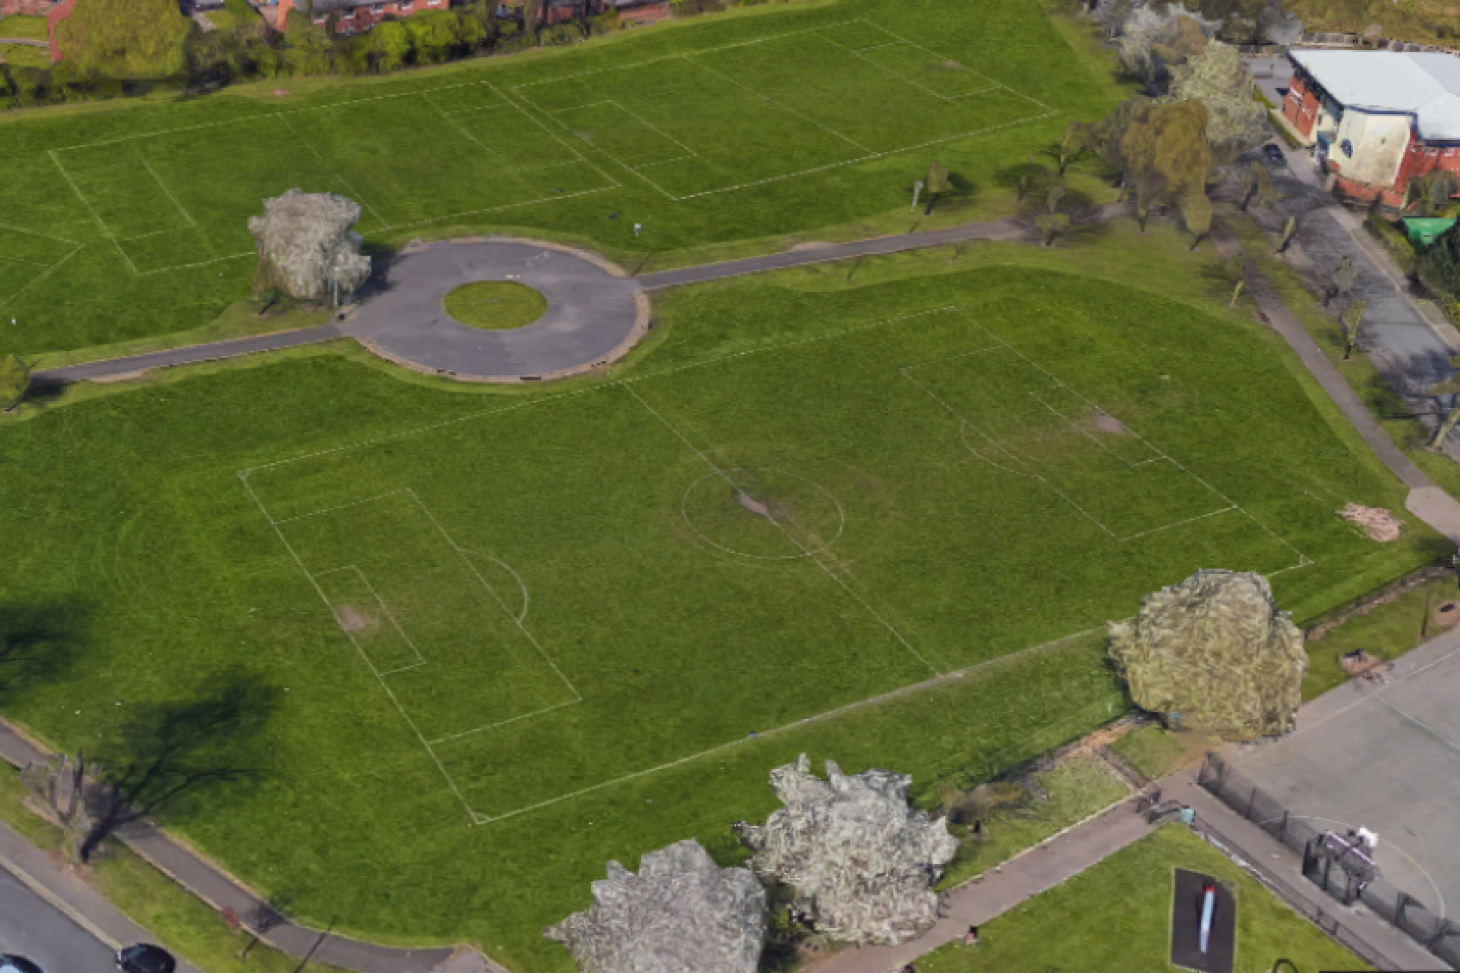 Patricroft Recreation Ground 11 a side | Grass football pitch